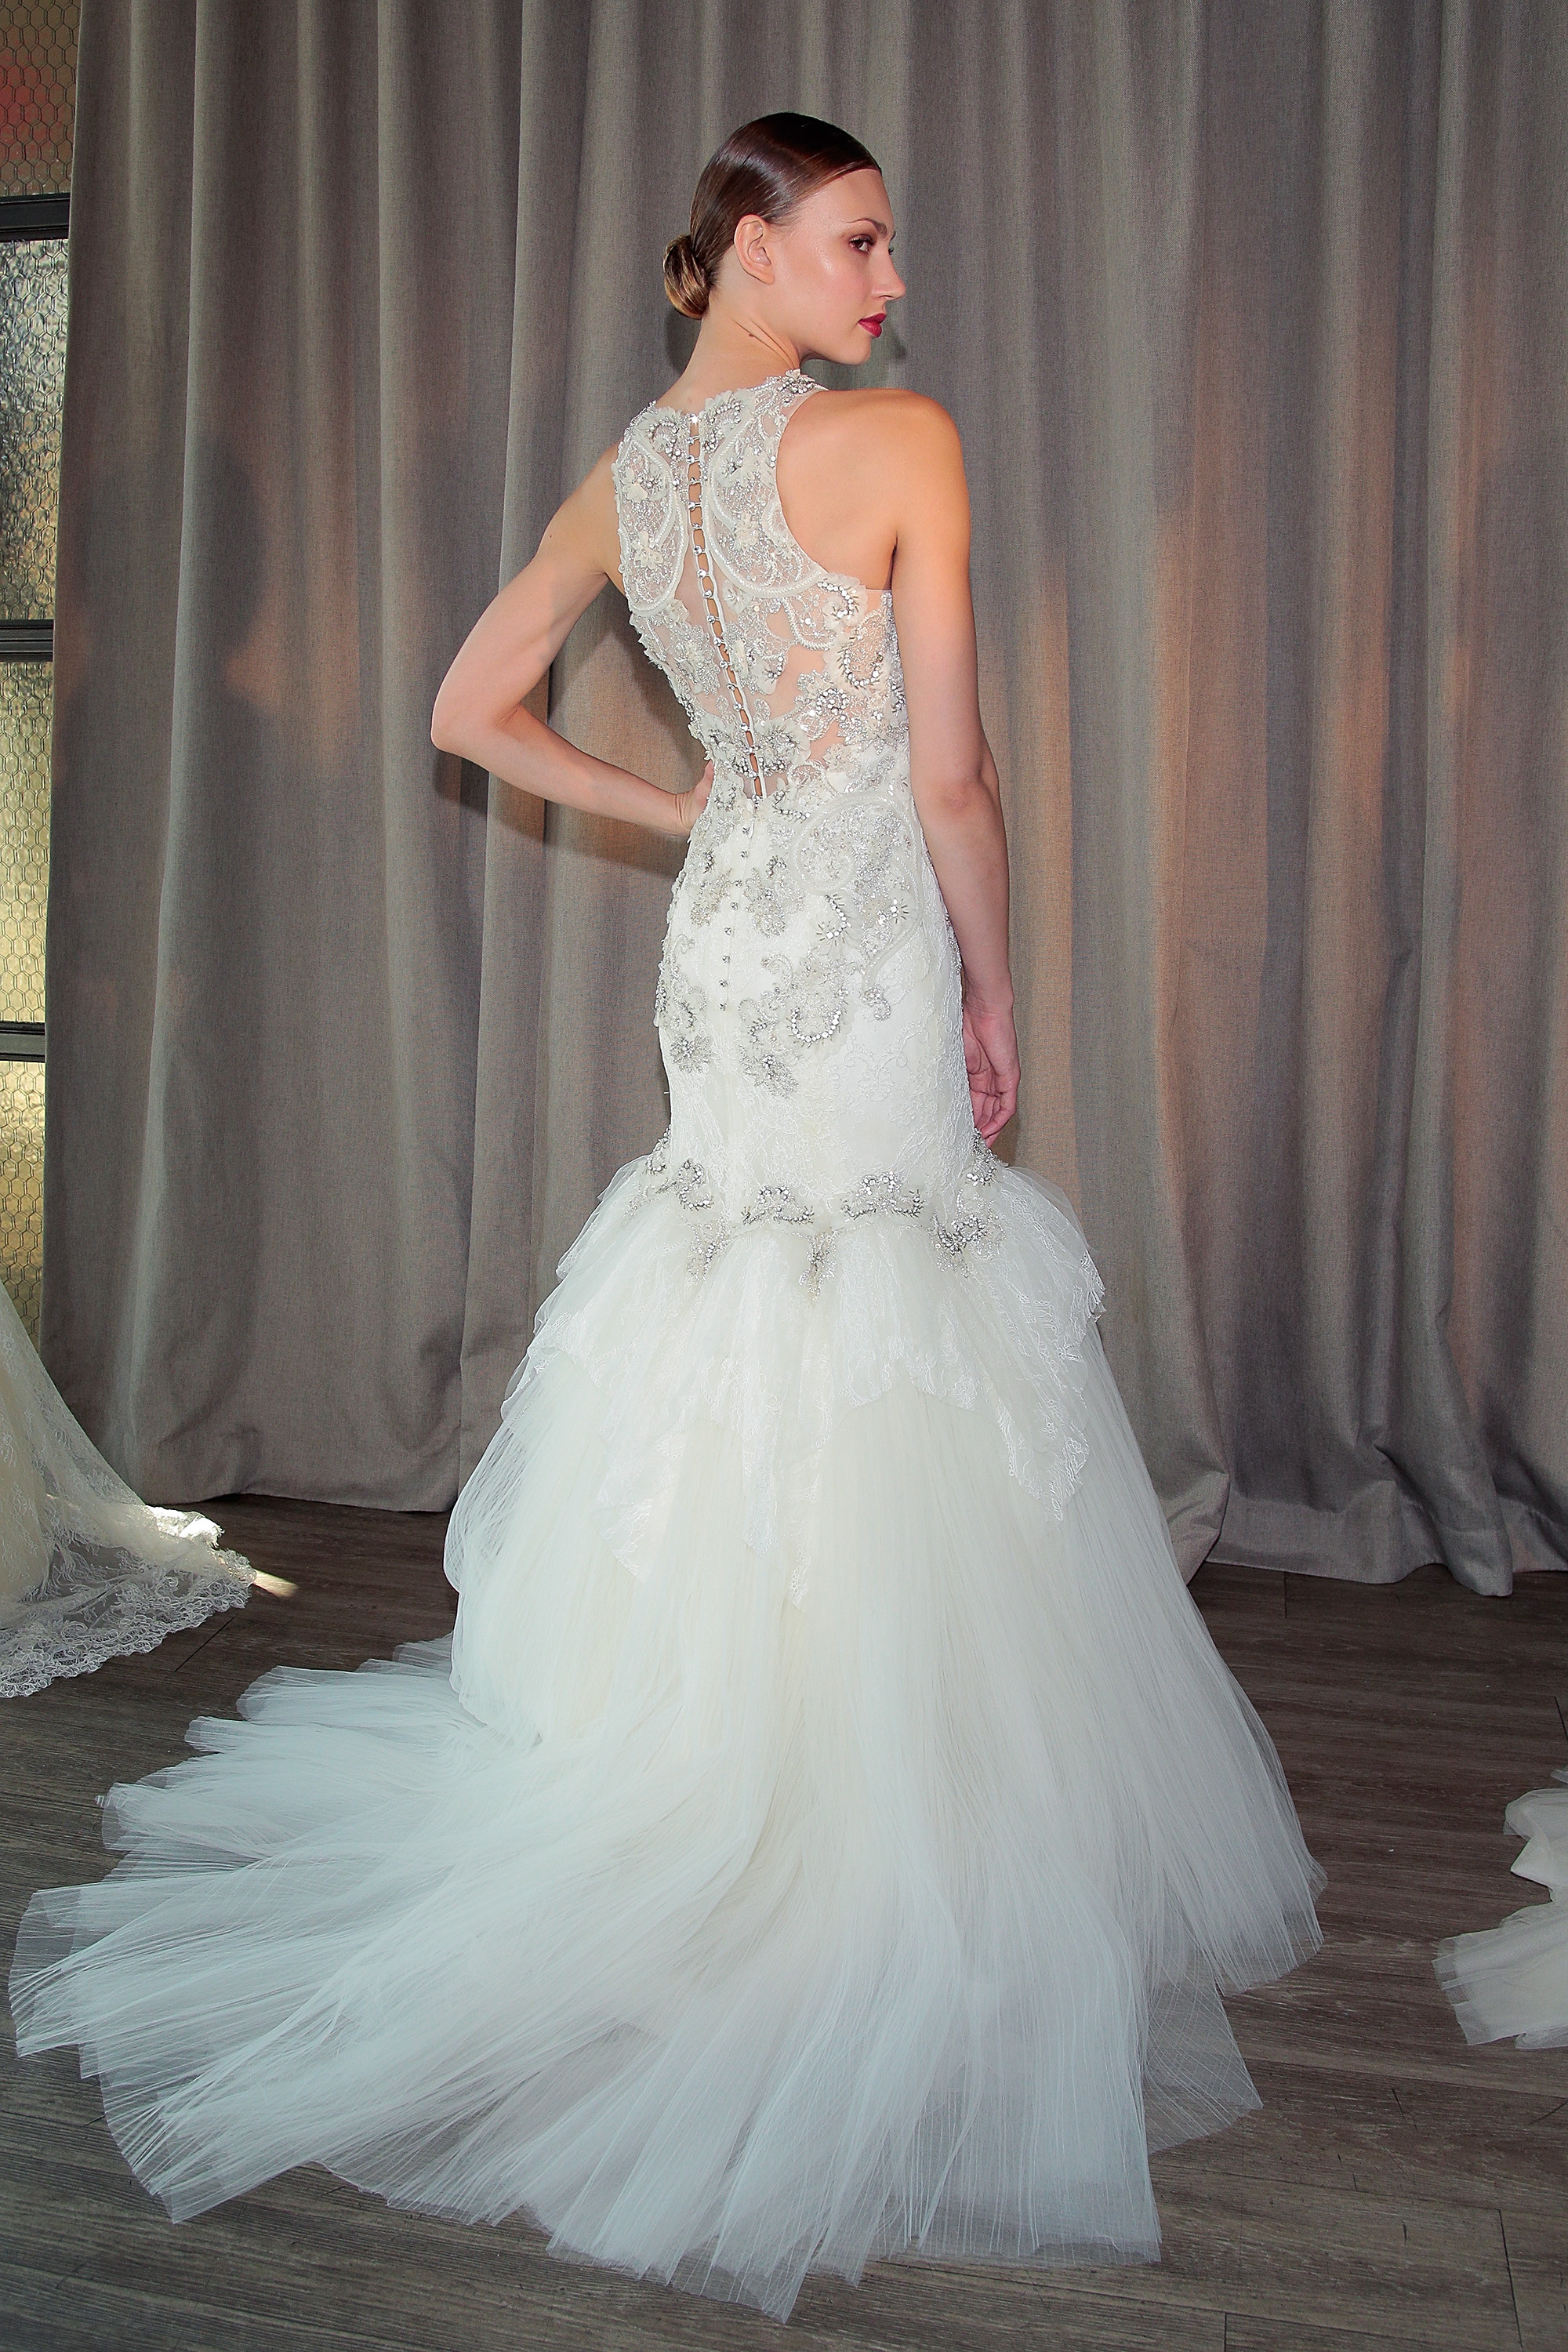 This Badgley Mischka gown stuns from behind with intricate lace detailing and crystal embellishments.